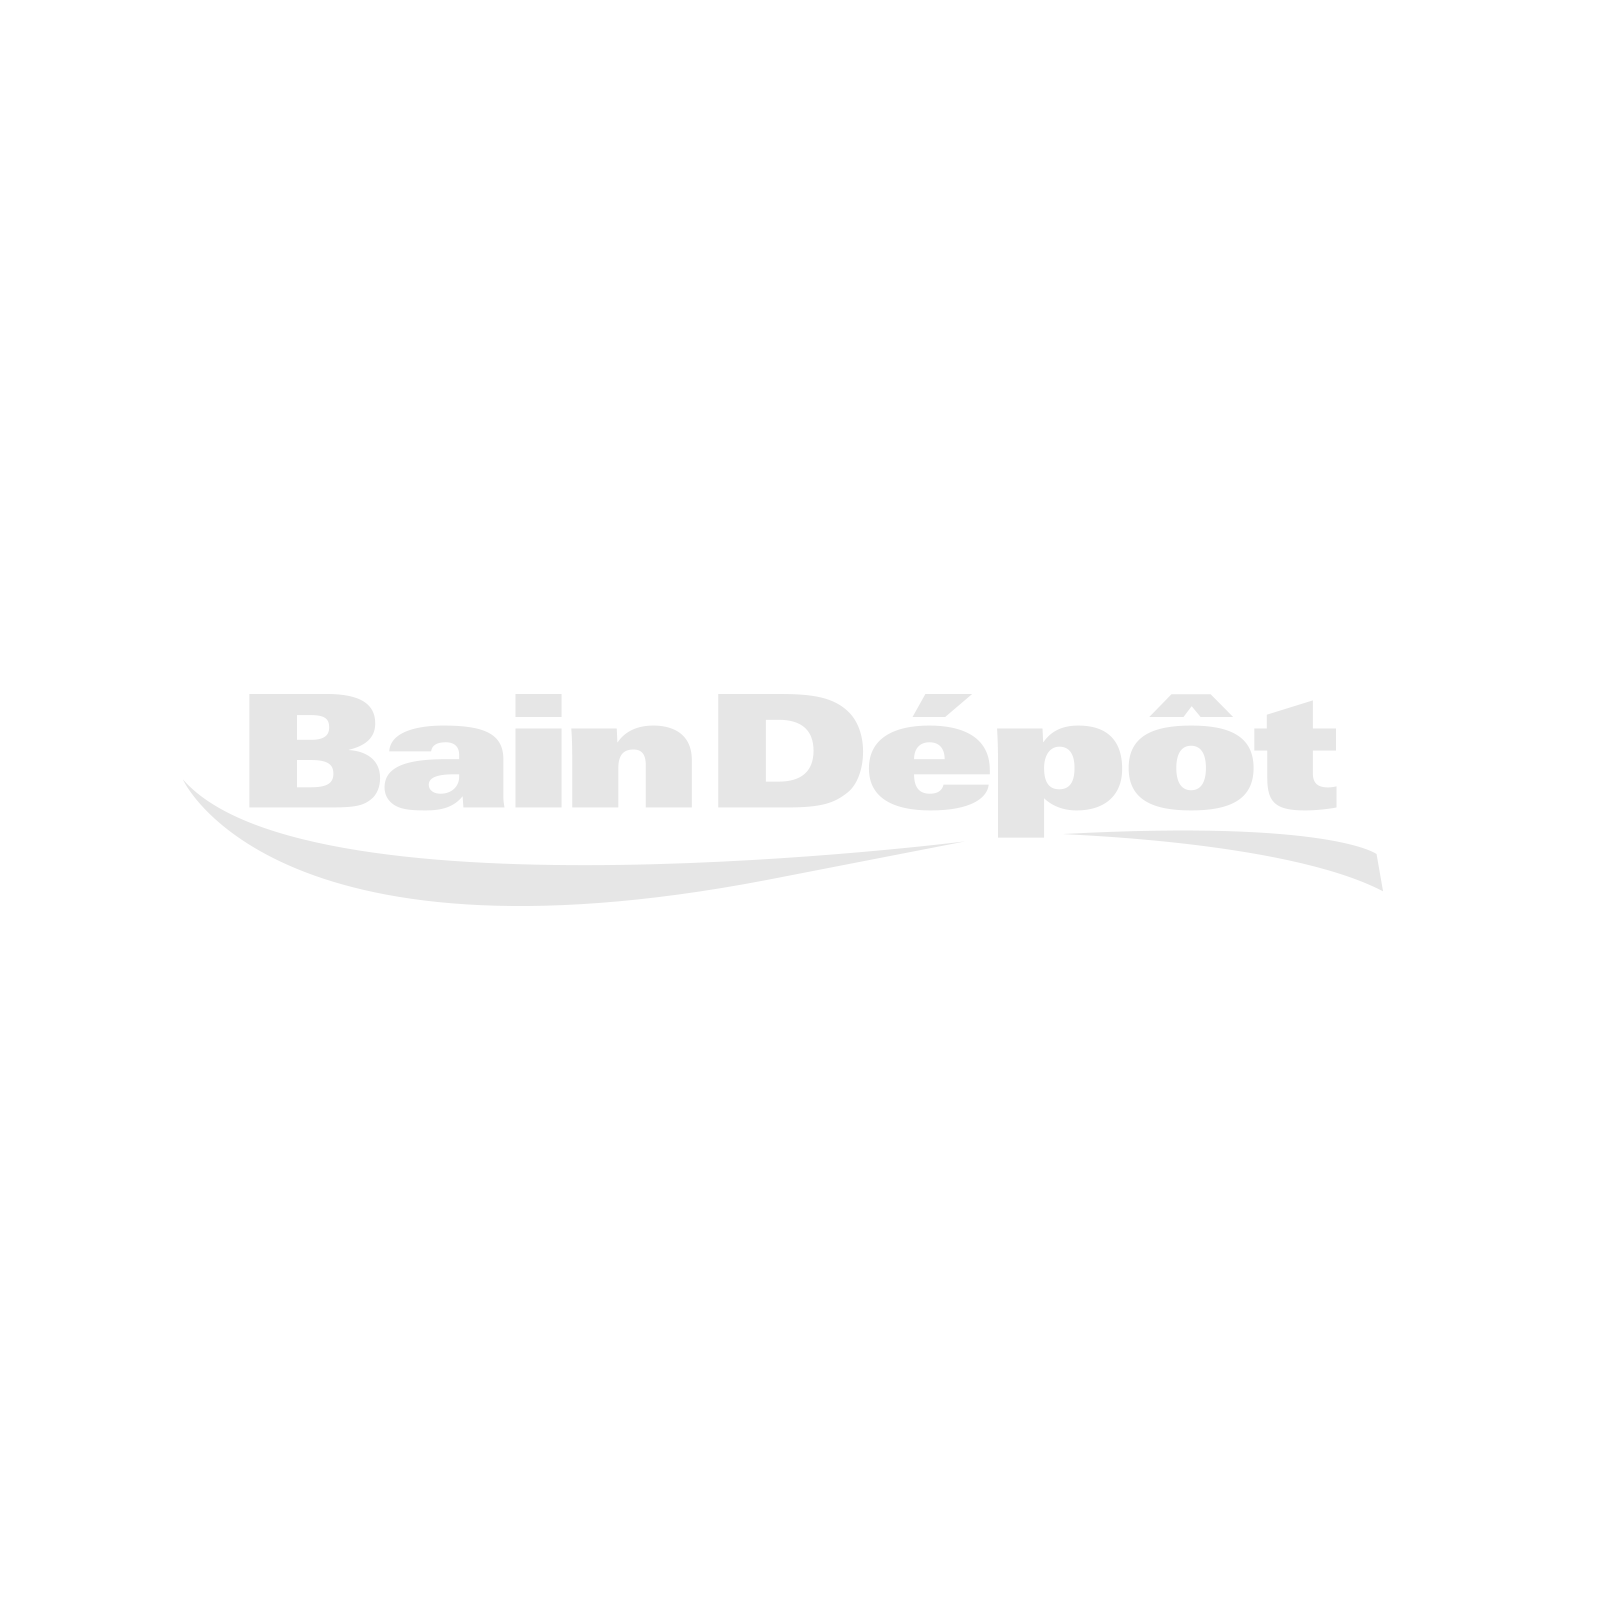 "Single undermount kitchen sink 23"" x 18"""